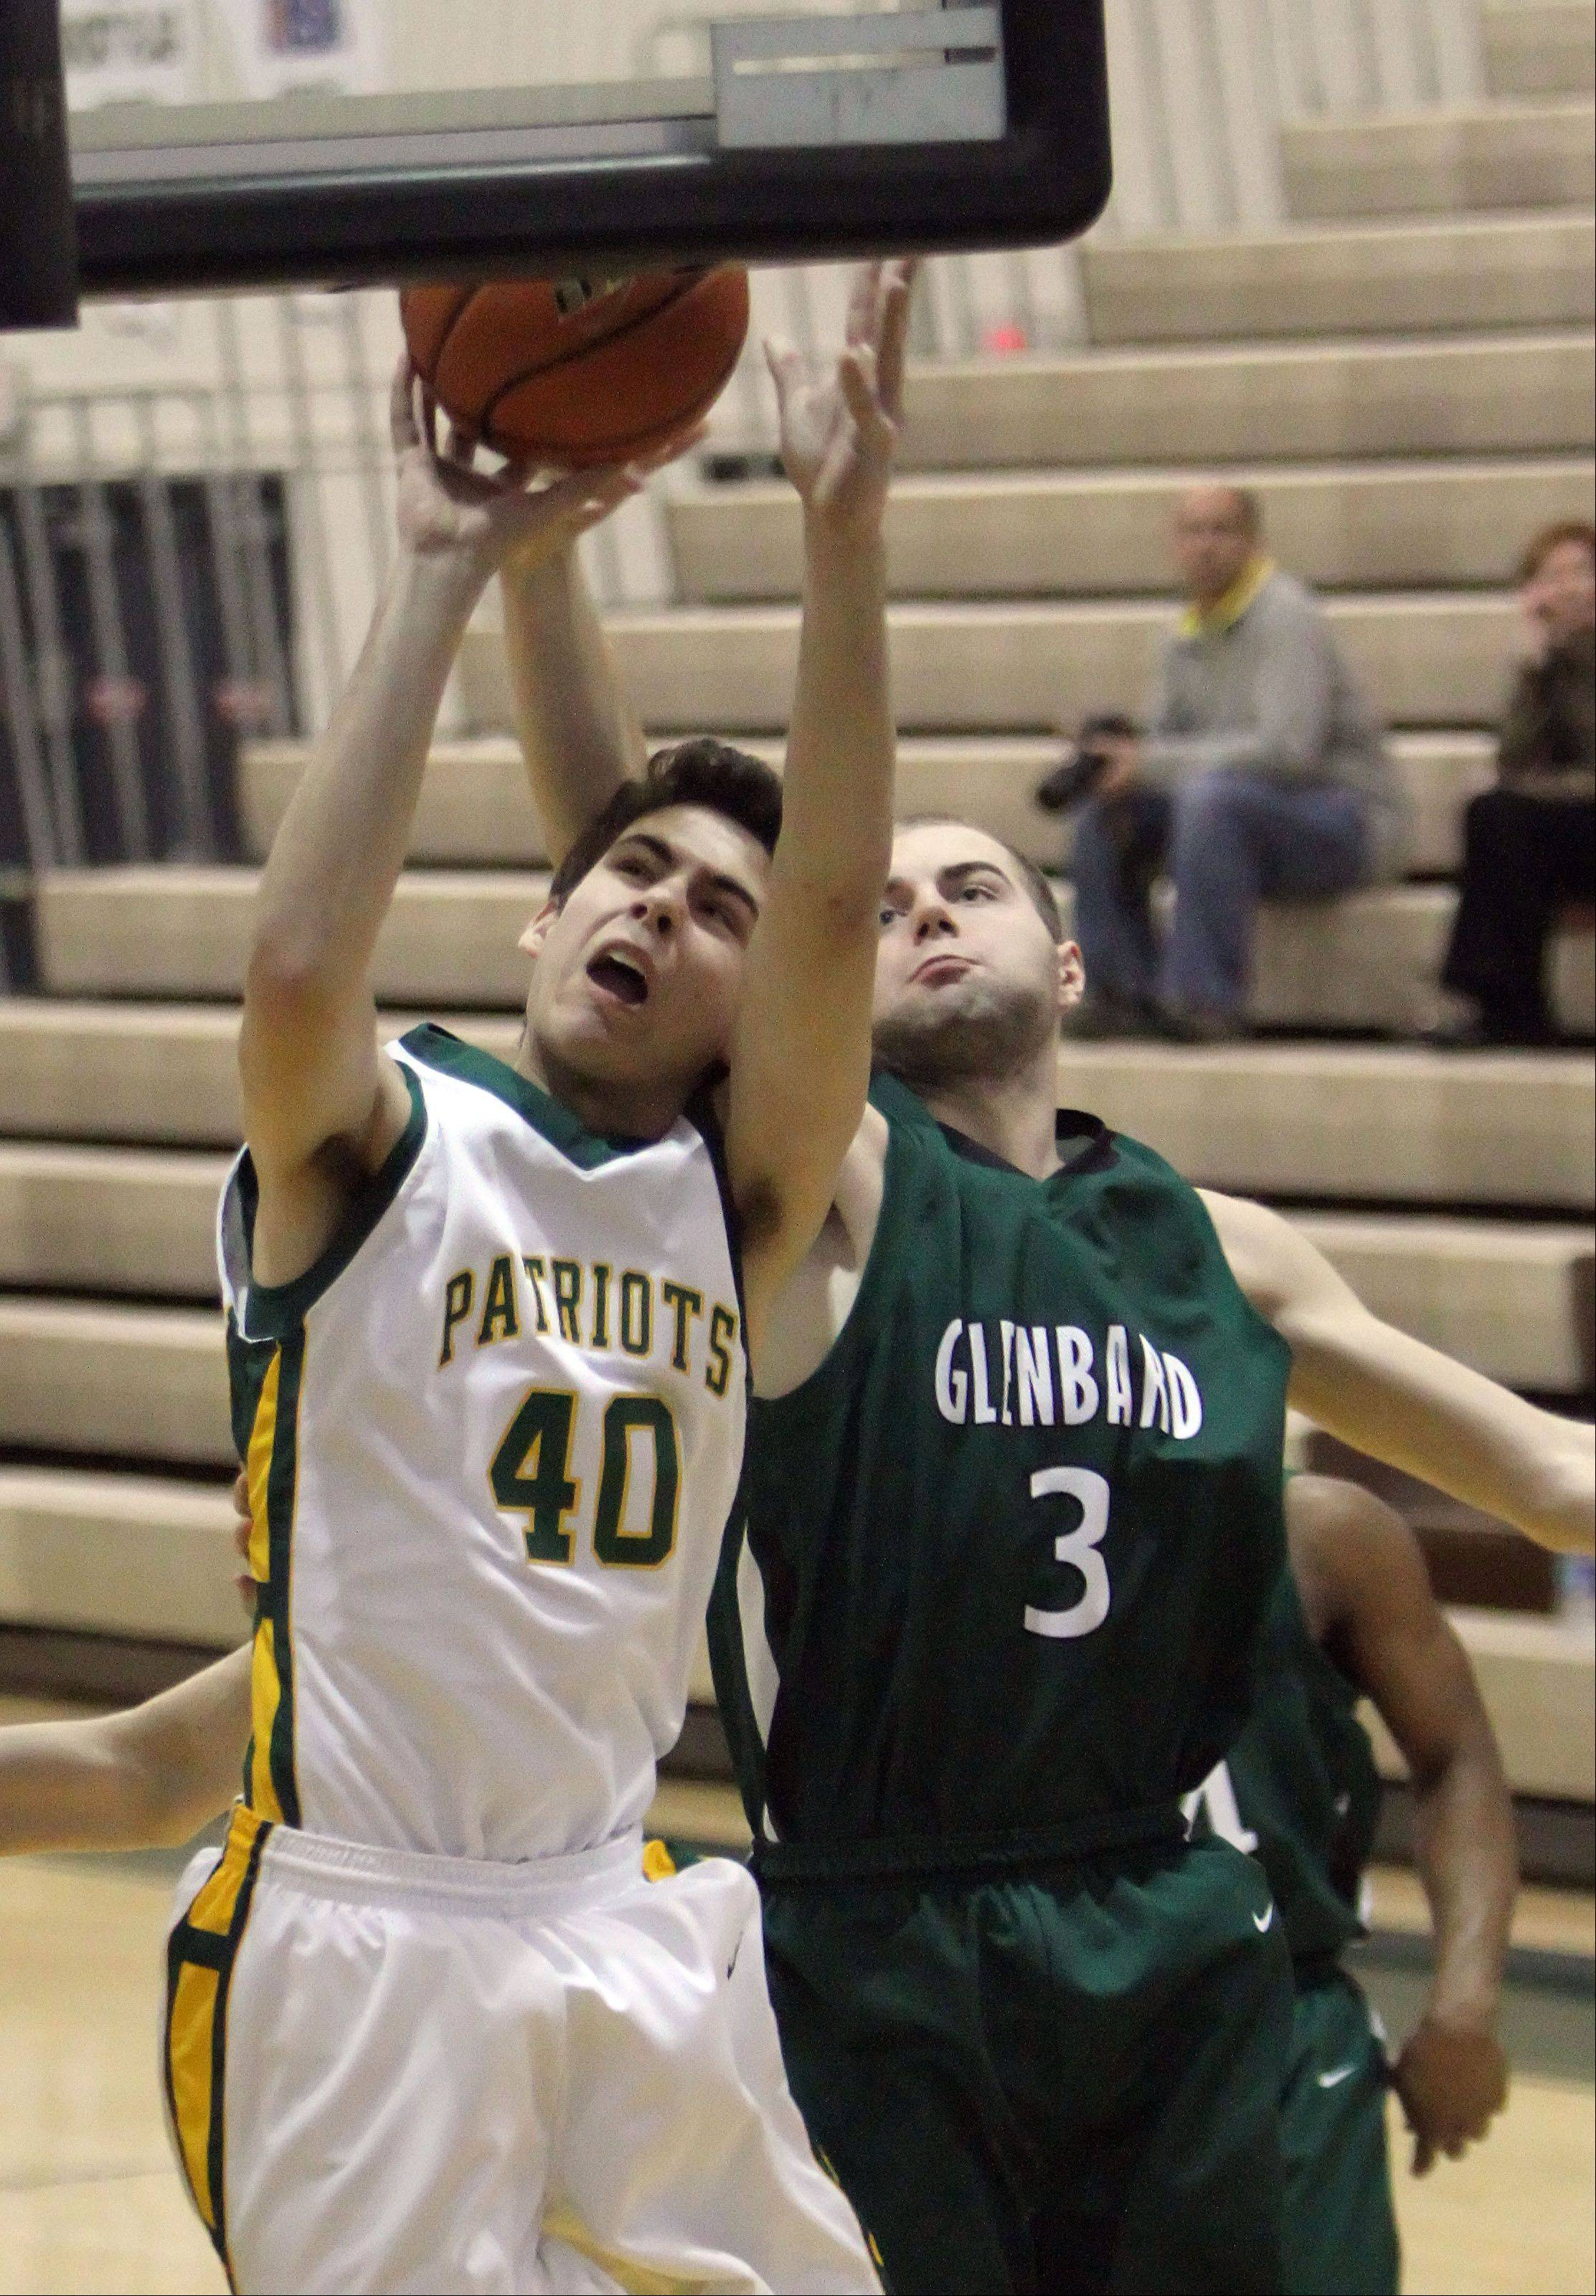 Stevenson's Parker Nichols,left, drives on Glenbard West's Kyle Bos.